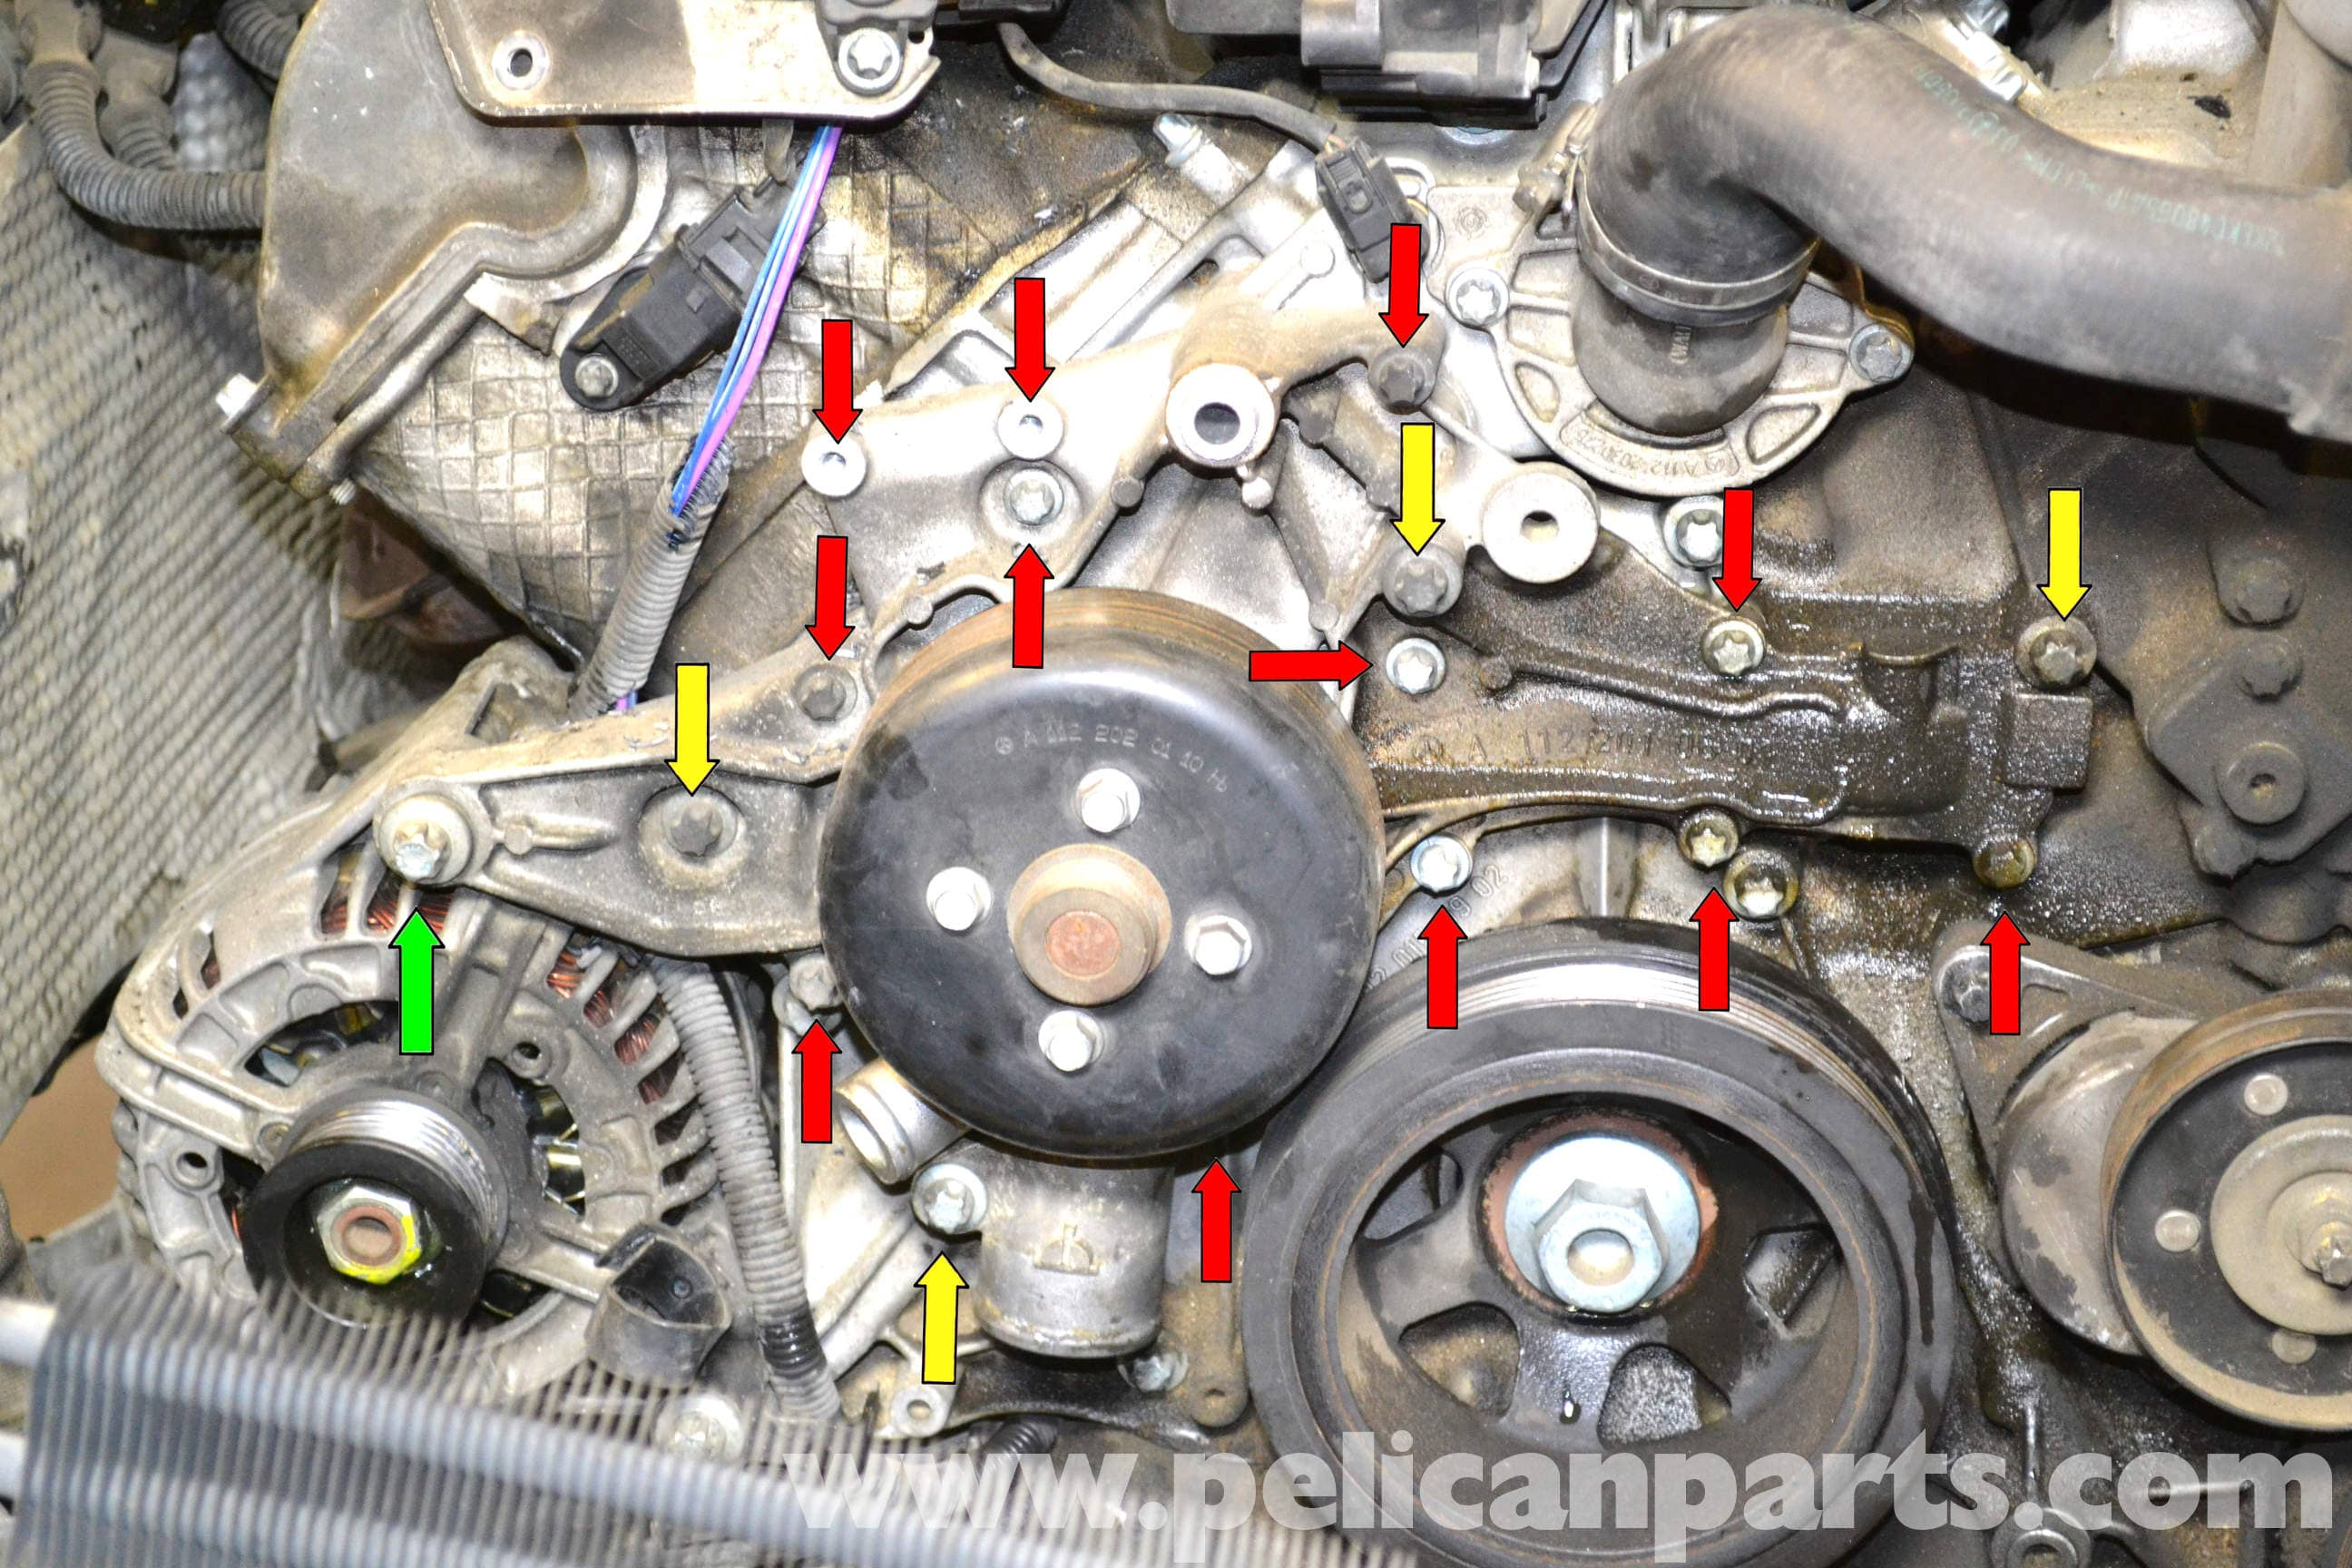 Mercedes Benz W203 Engine Diagram Great Installation Of Wiring C Cl W202 C240 Fuse Box Water Pump Replacement 2001 2007 C230 C280 Rh Pelicanparts Com